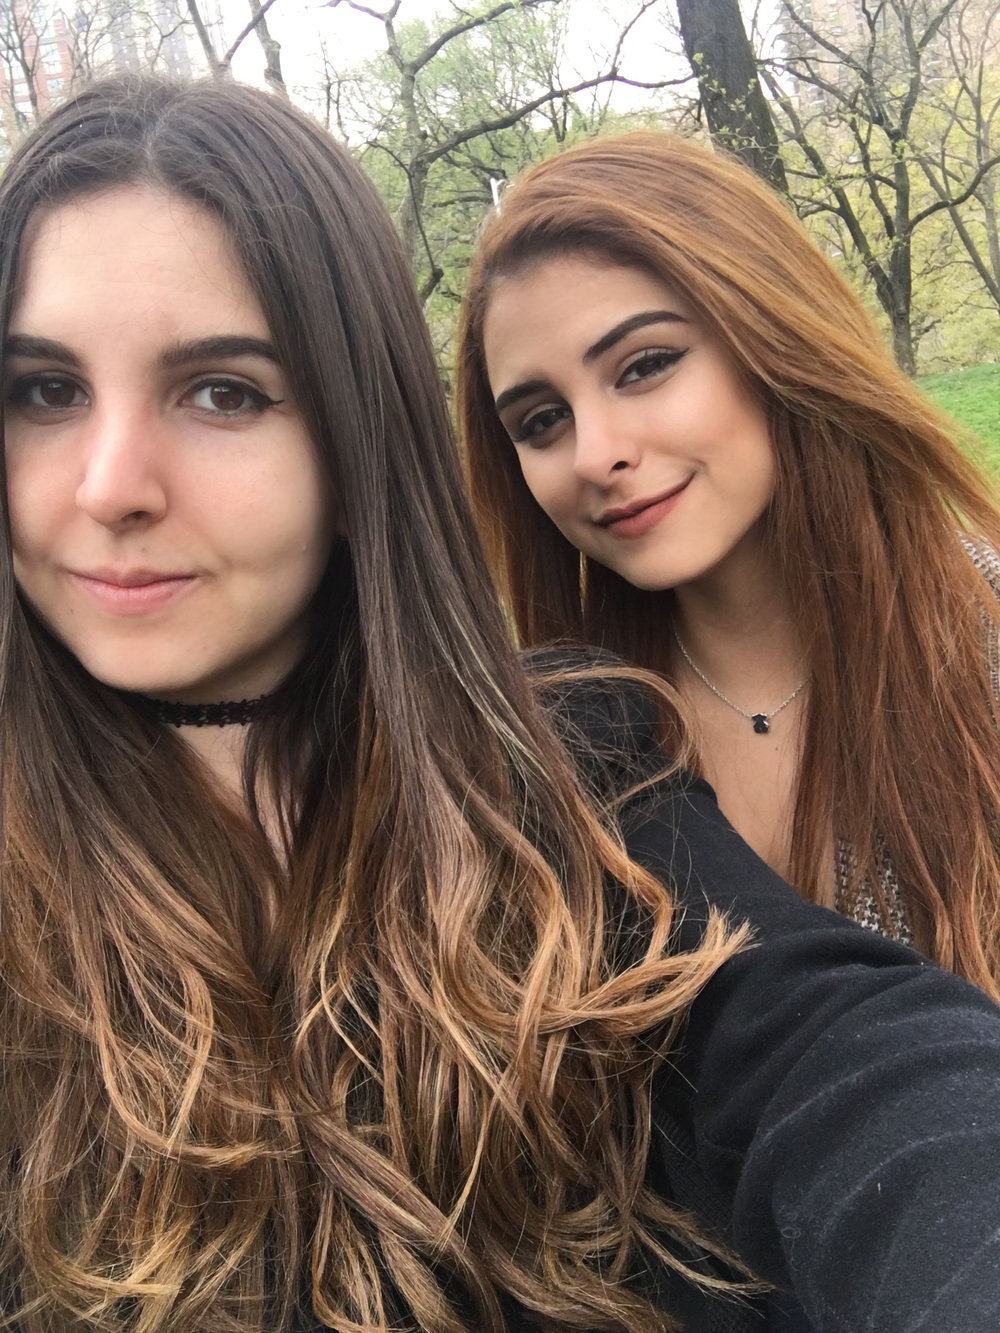 Anne and I in Central Park